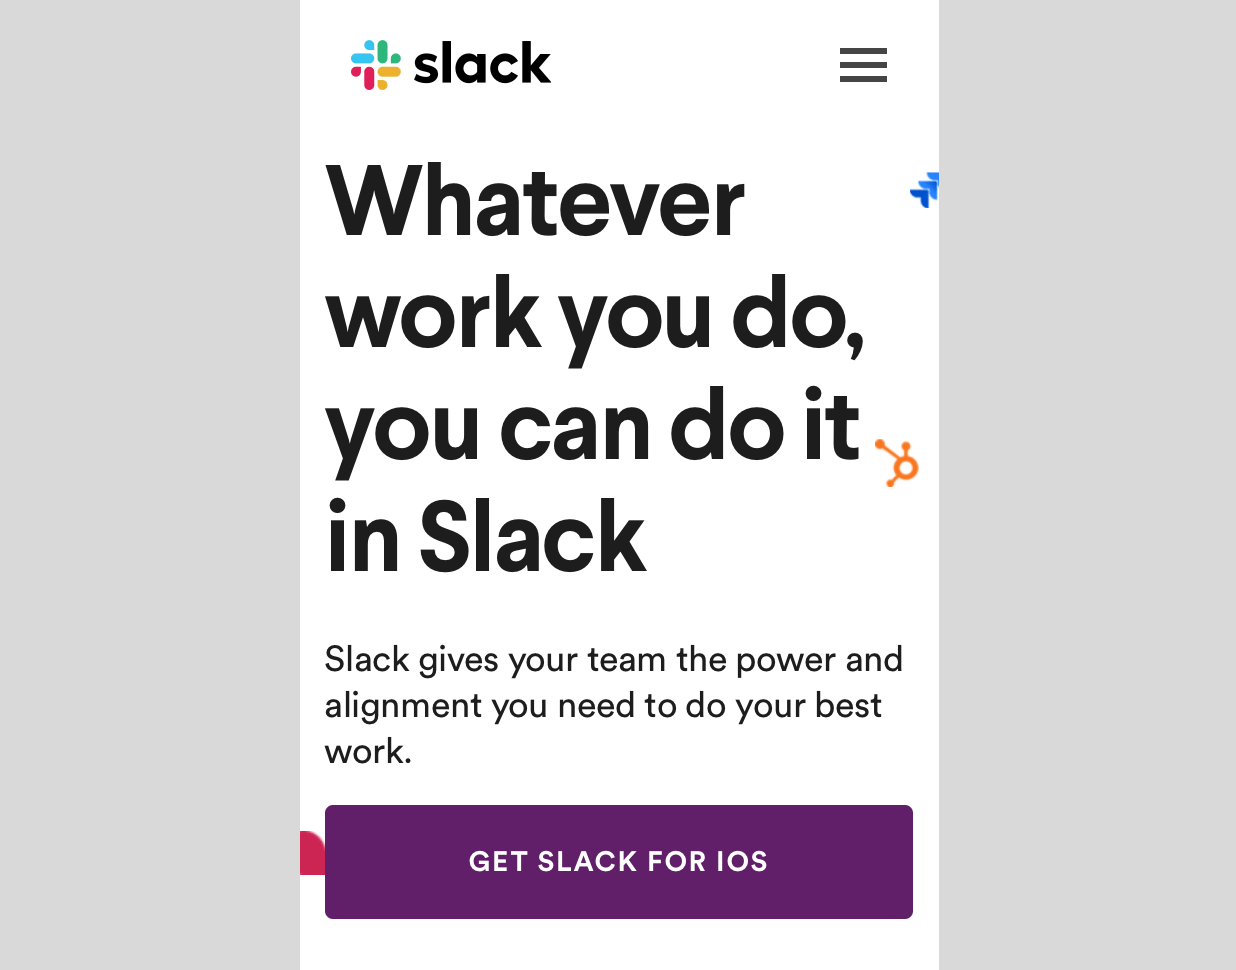 L'appel mobile Slack à l'action.